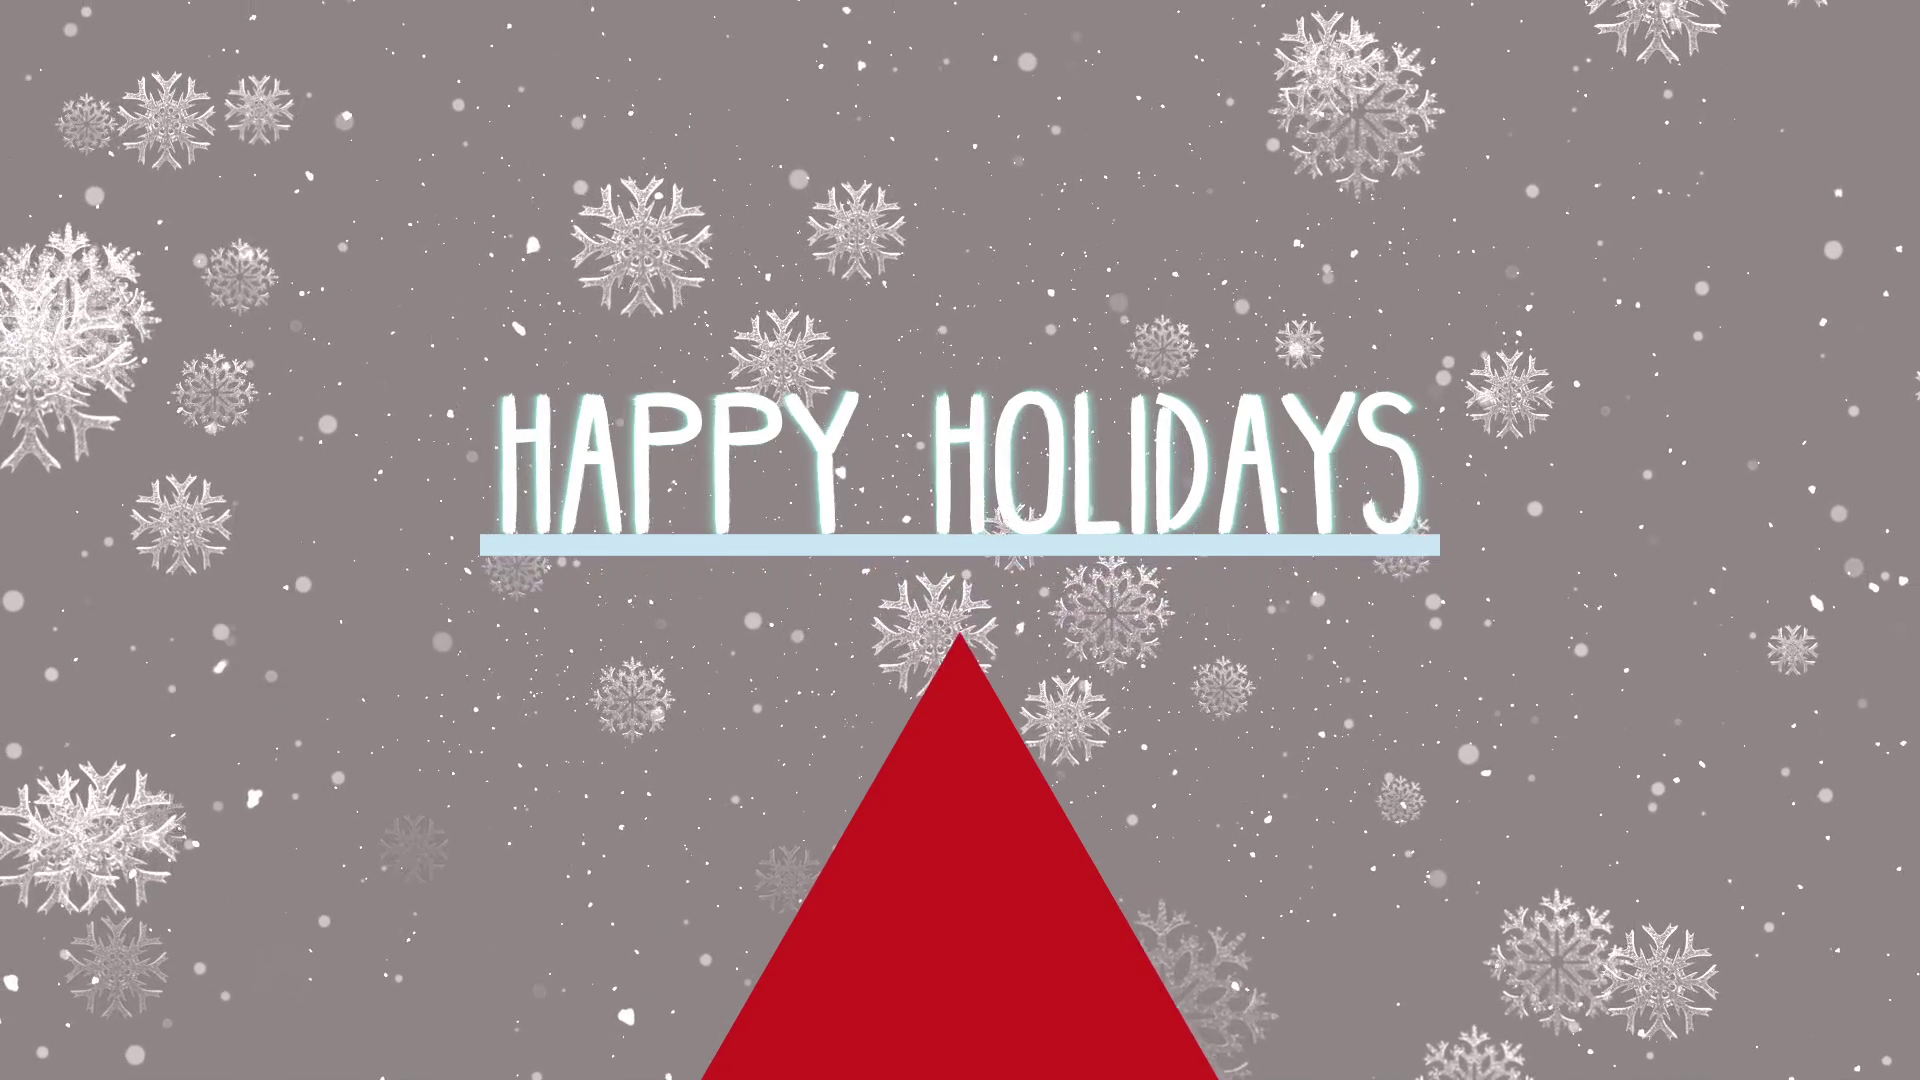 Happy holidays png snow. Background modern winter title